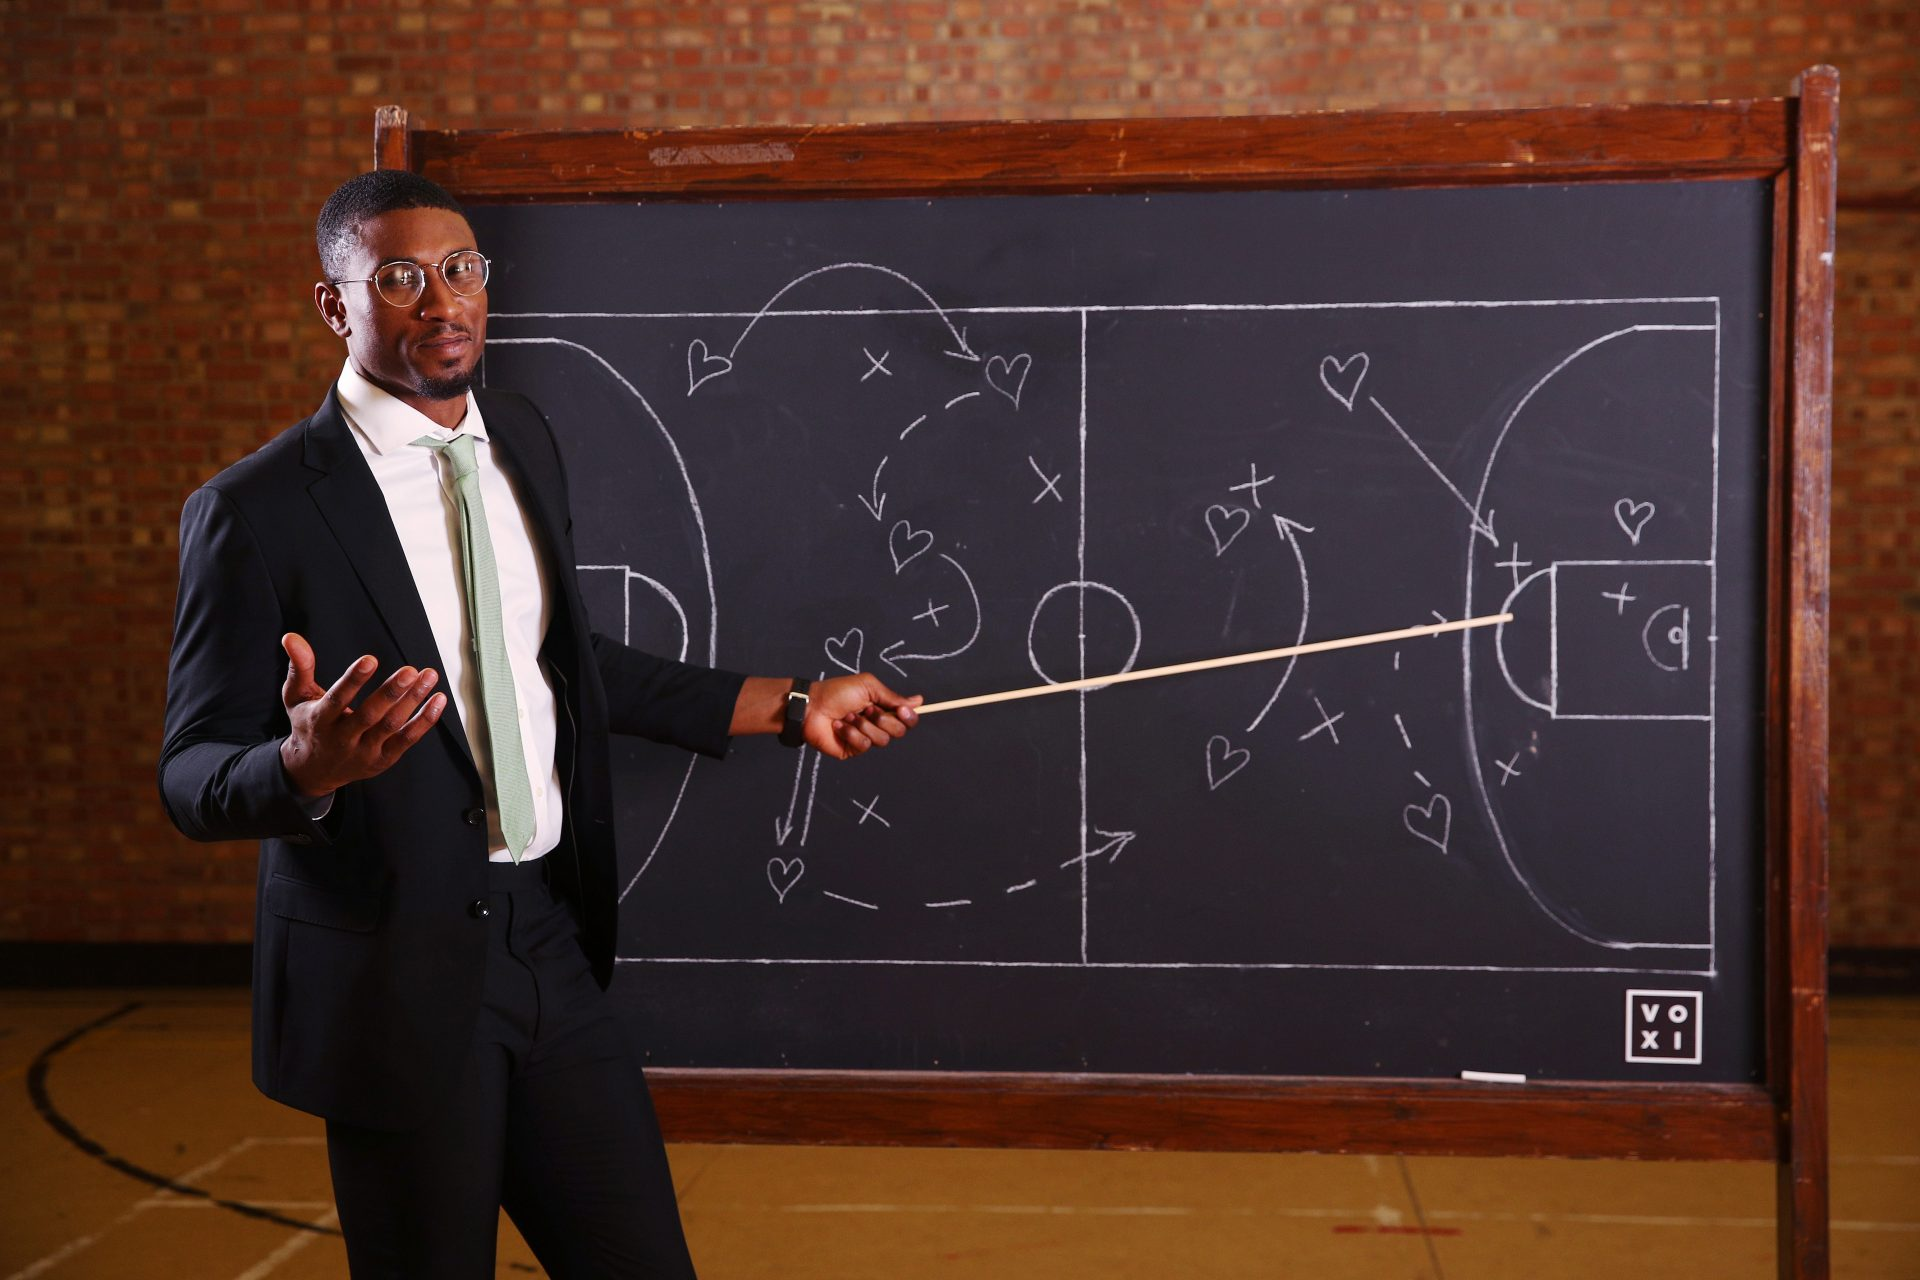 Ovie Soko is on hand to help solve the nation's relationsh'ip dilemmas as VOXIs new Love Coach